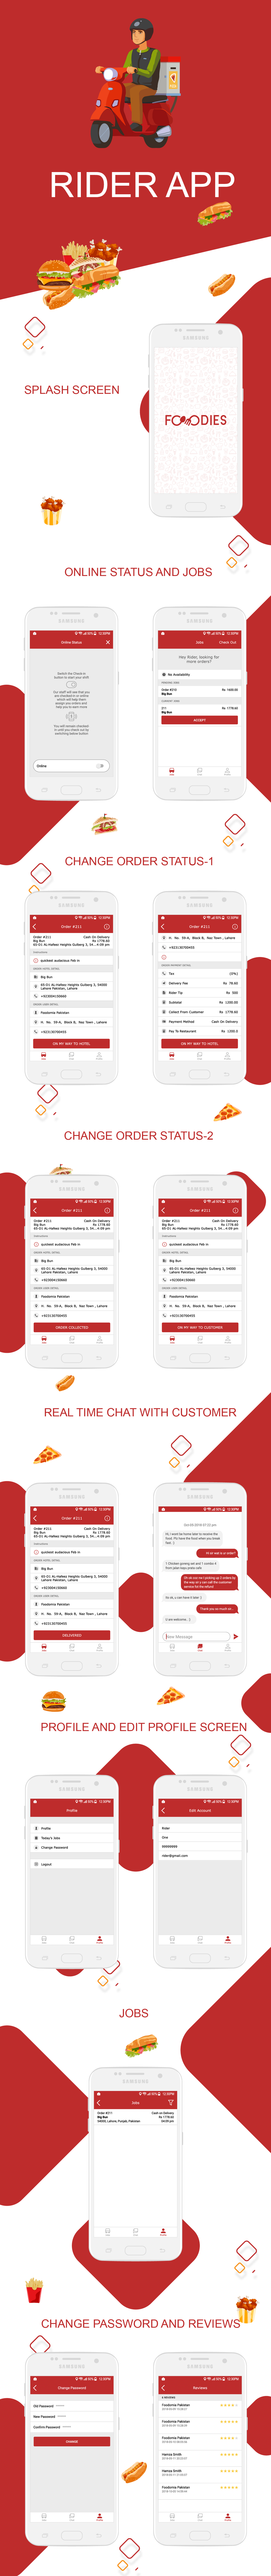 Foodies - Android Delivery Boy Mobile App v1.0 - 3